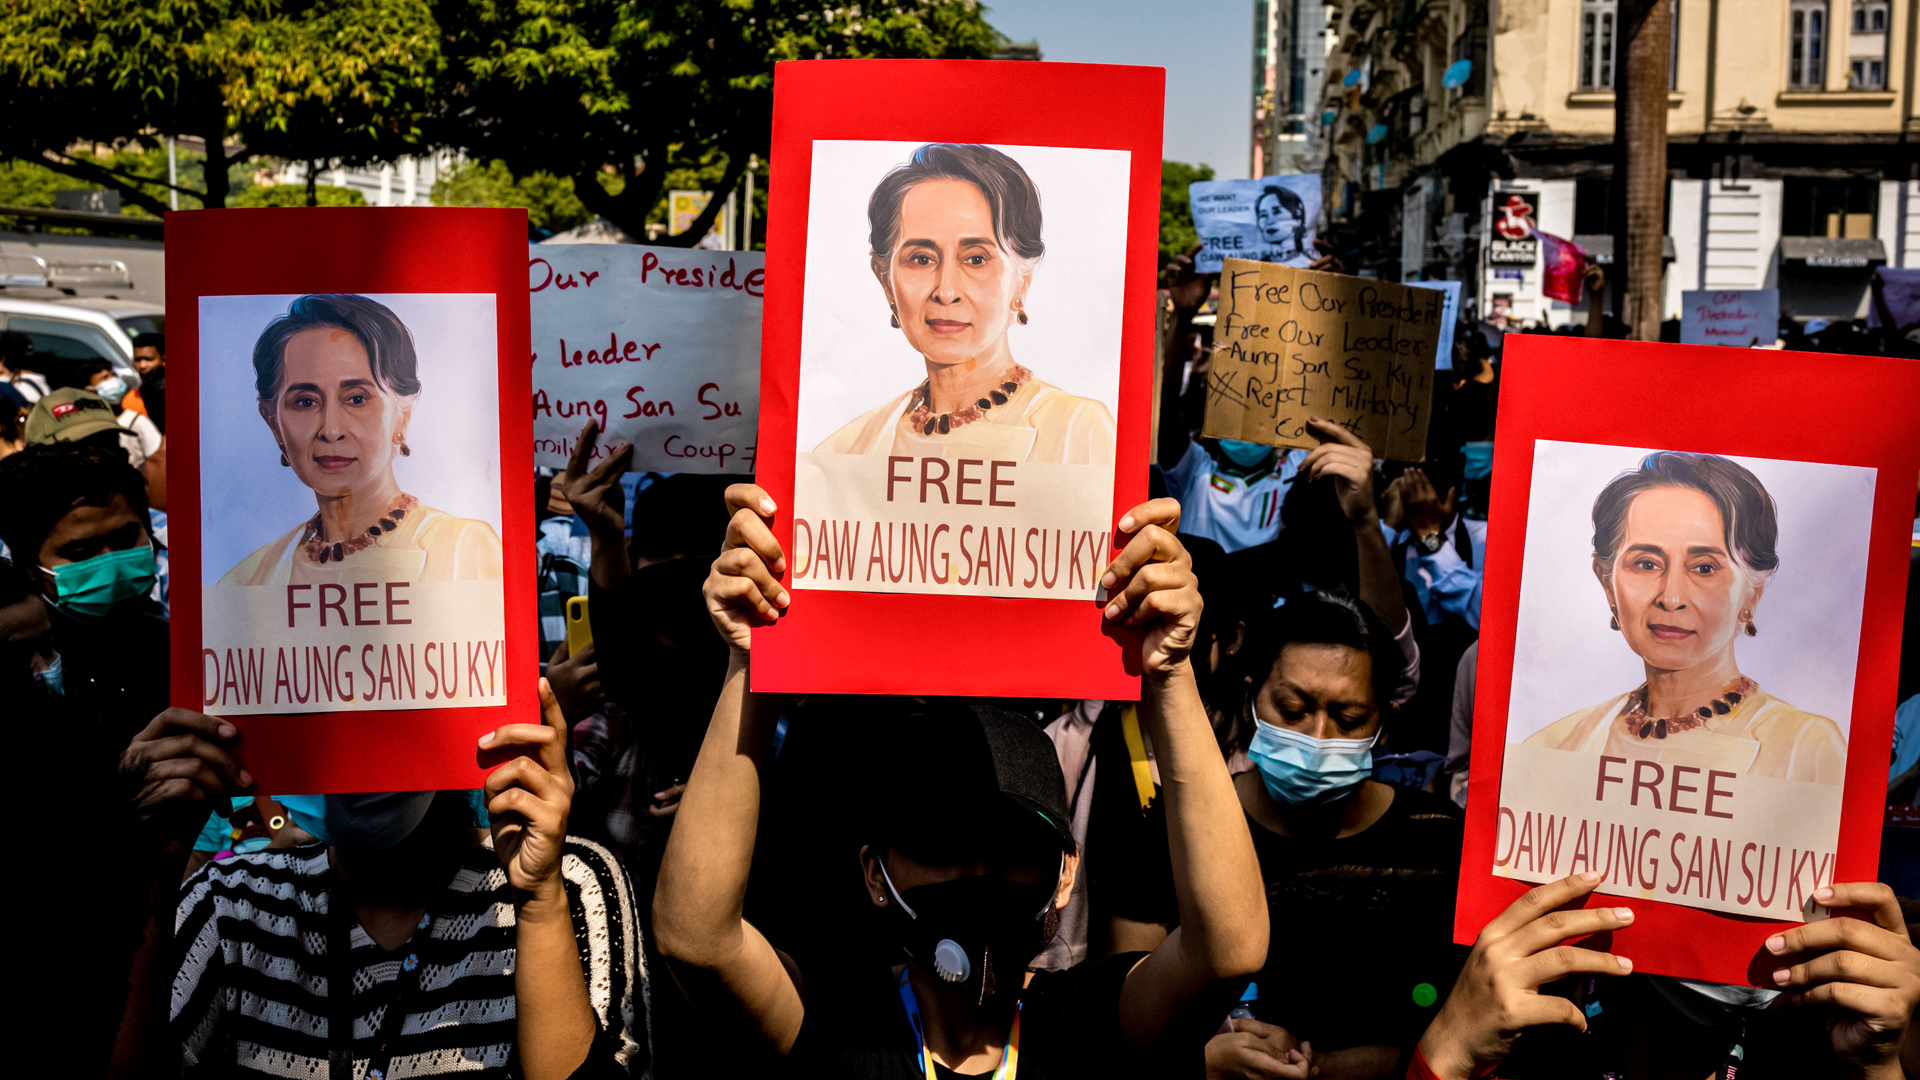 Internet Restored As Myanmar Coup Protests Continue